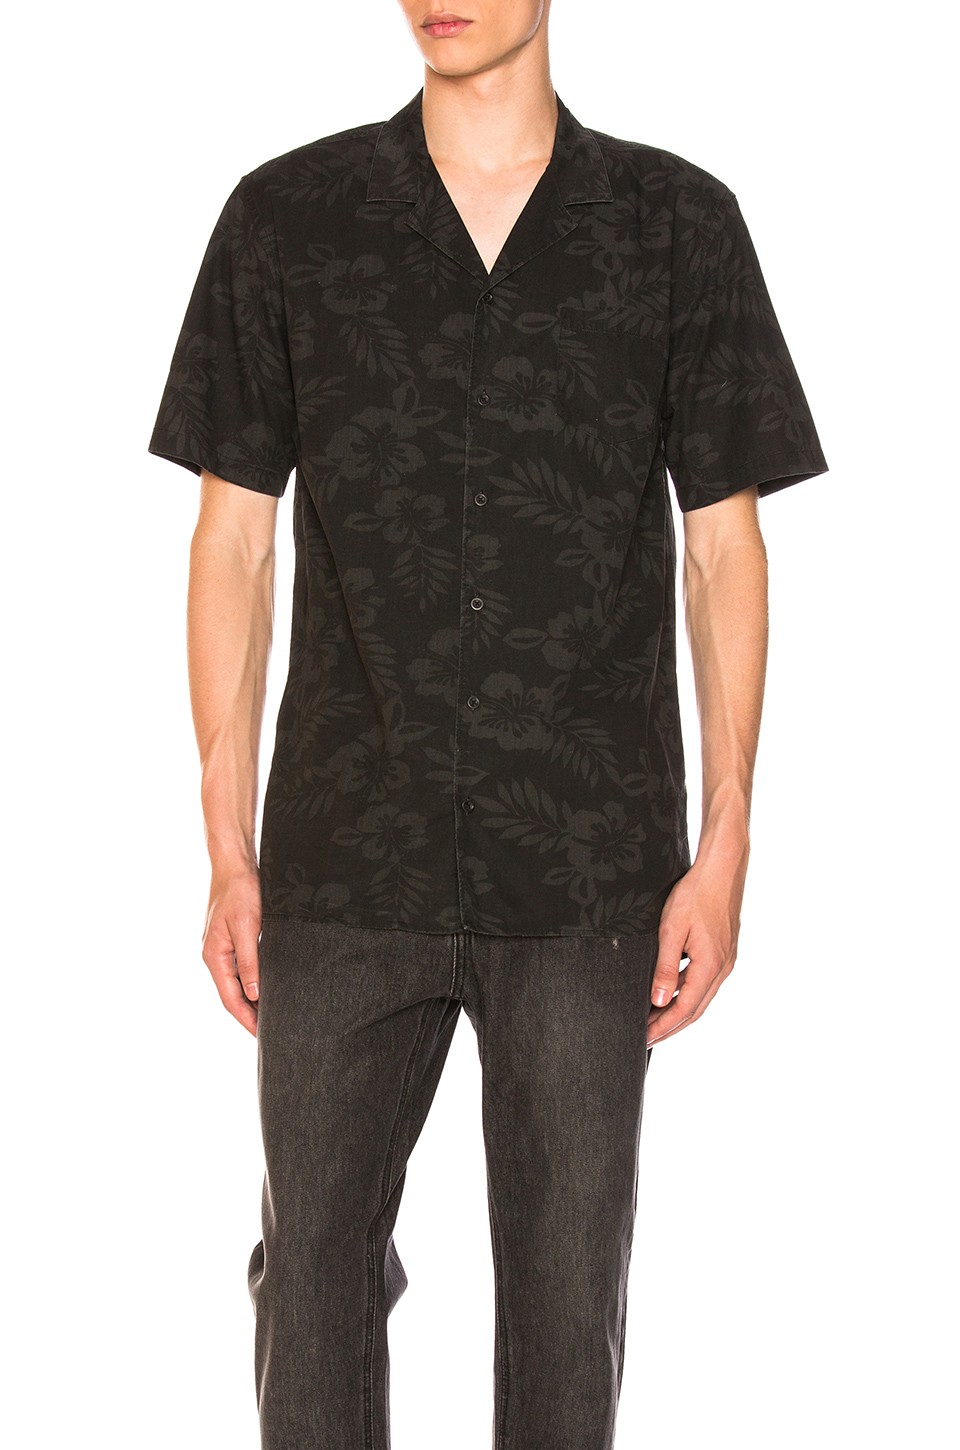 Zanerobe Camper Box Shortsleeve Shirt in Black Floral